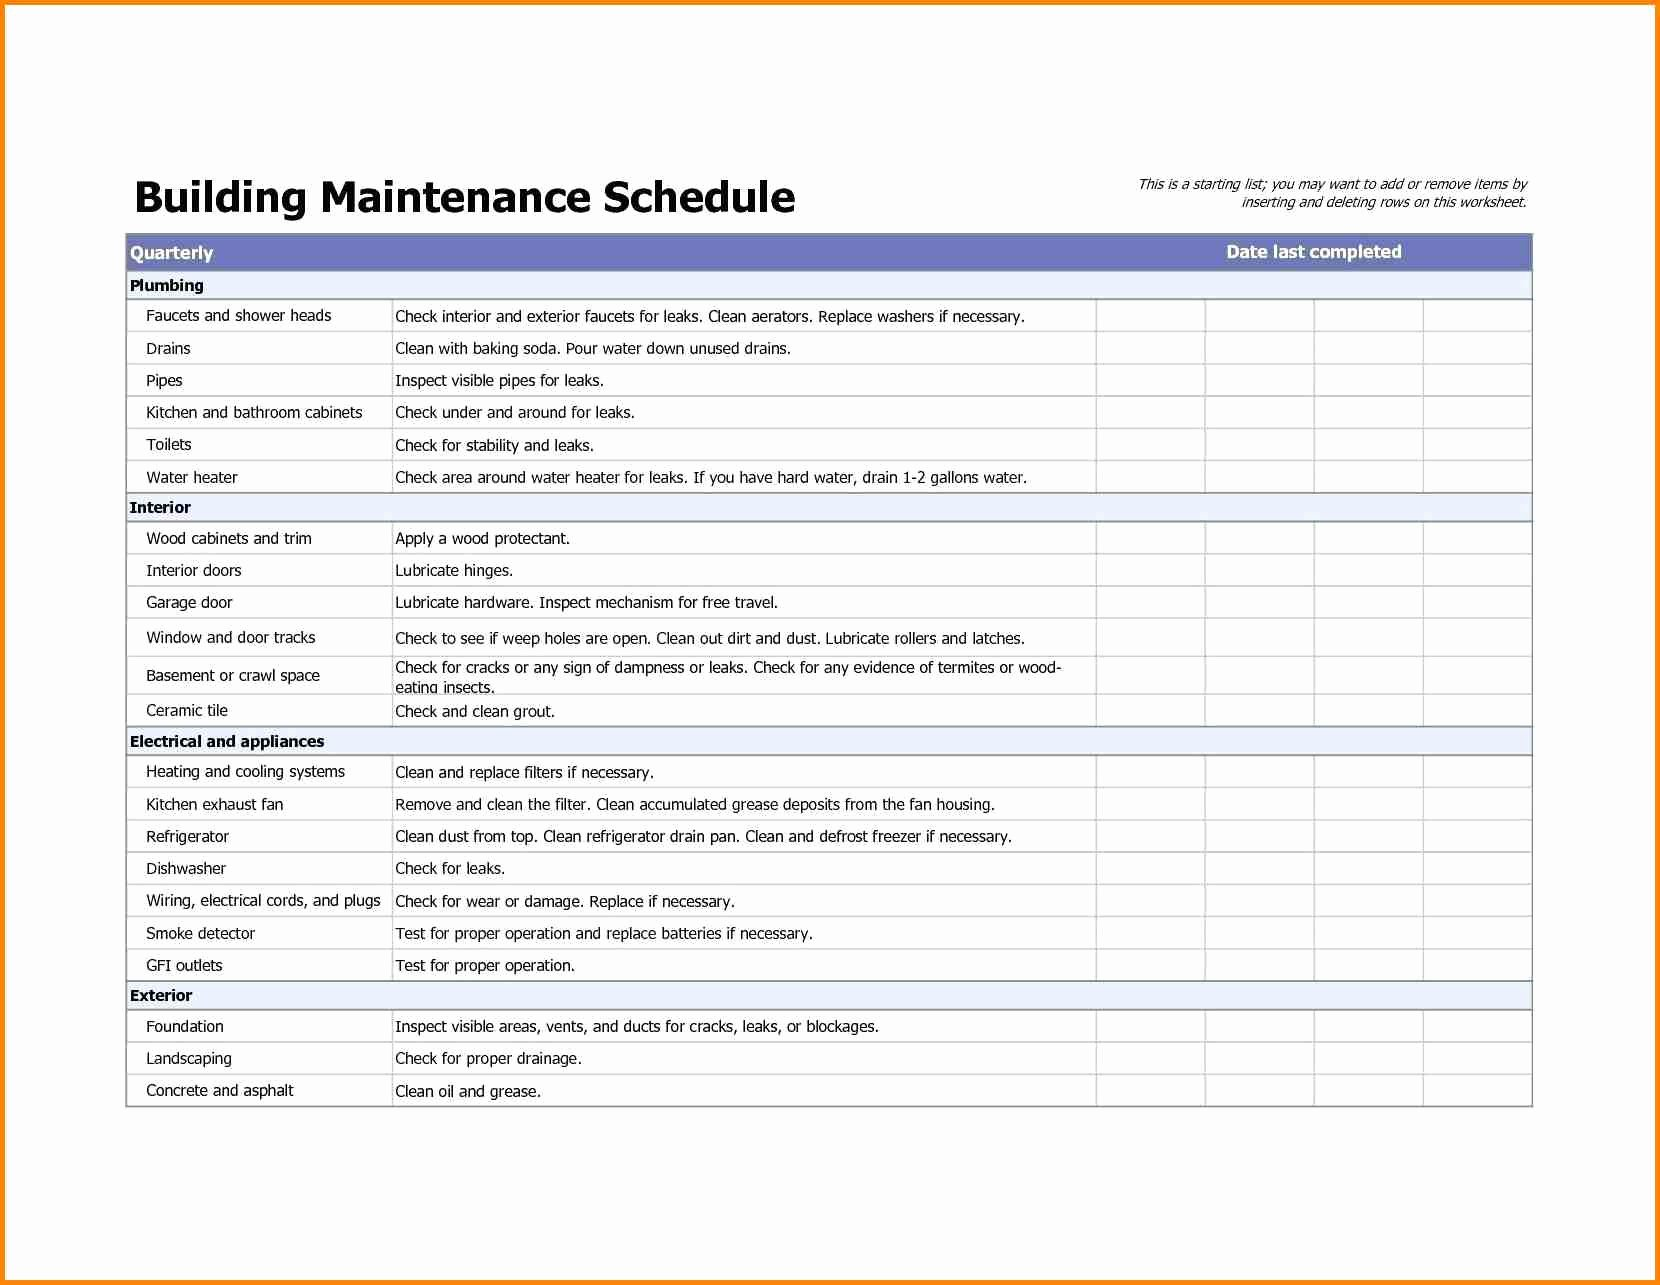 Preventive Maintenance Checklist Template Fresh Building Maintenance Checklists – Emmamcintyrephotography